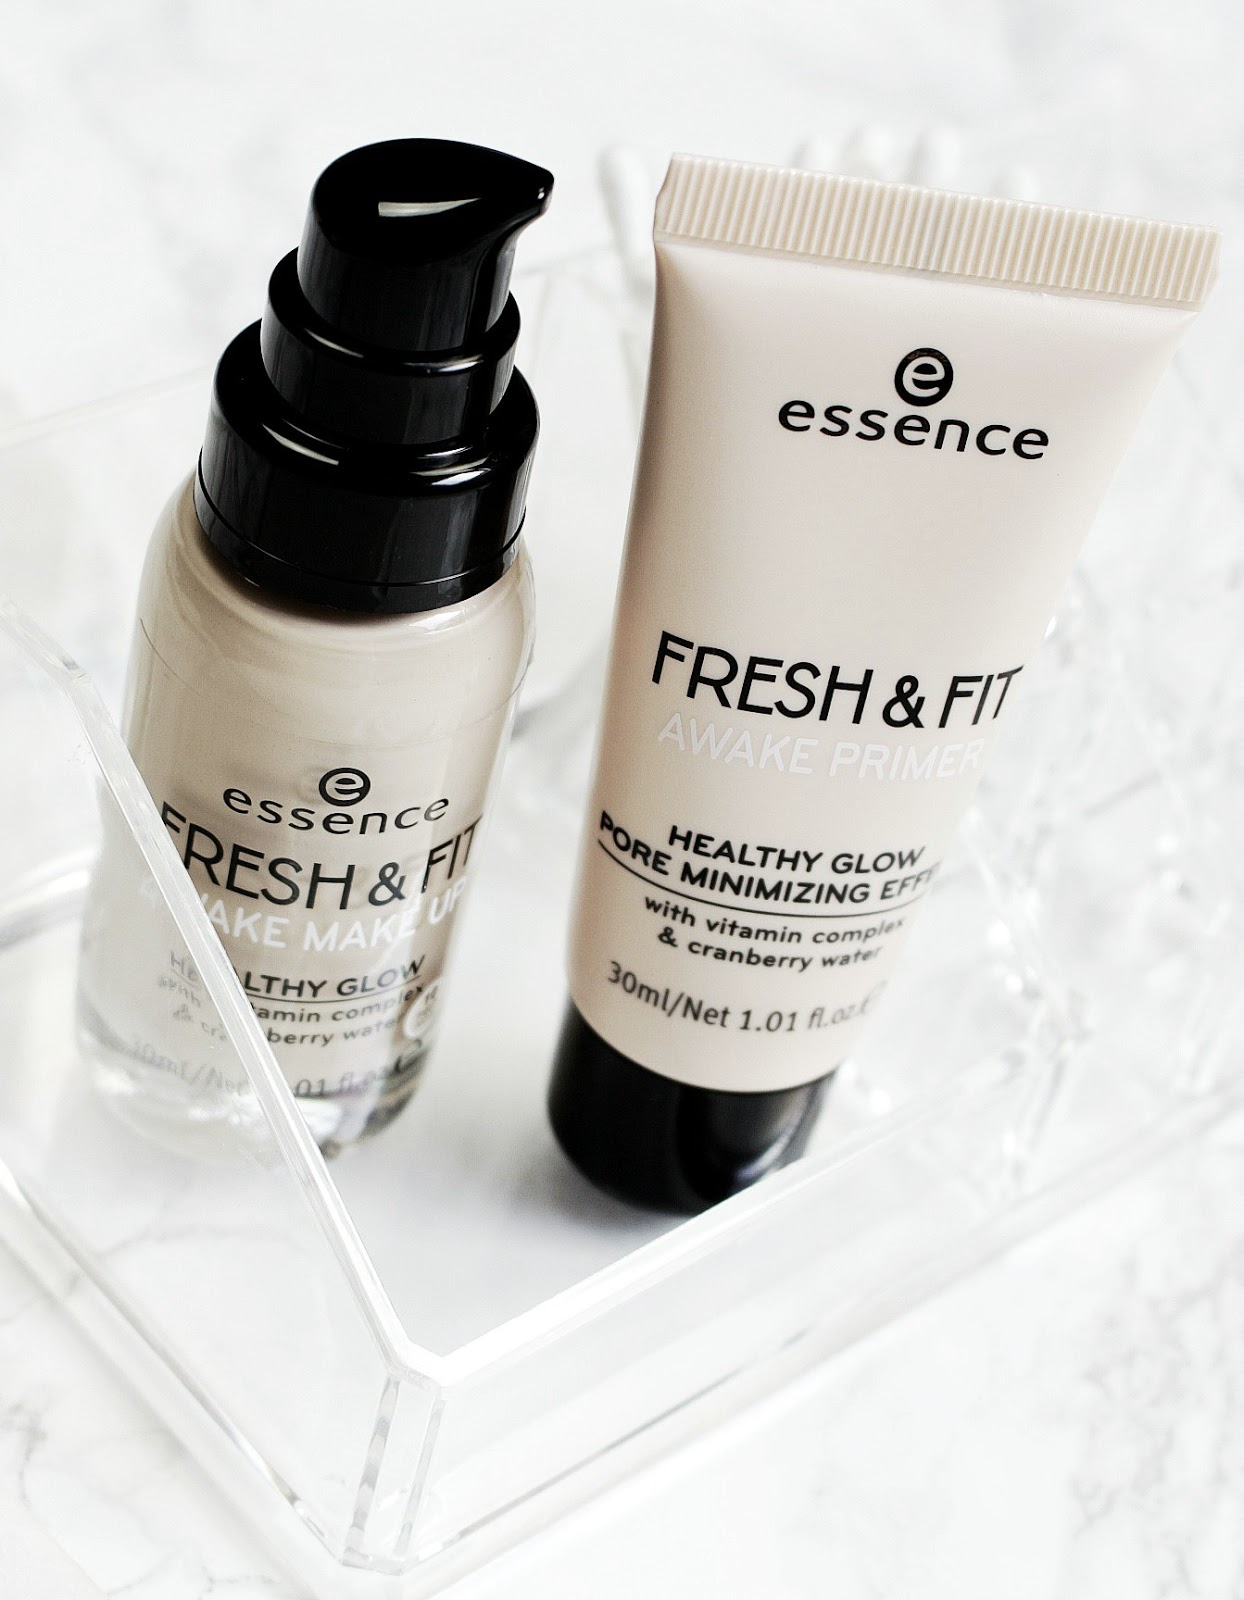 Essence Fresh & Fit Primer And Foundation